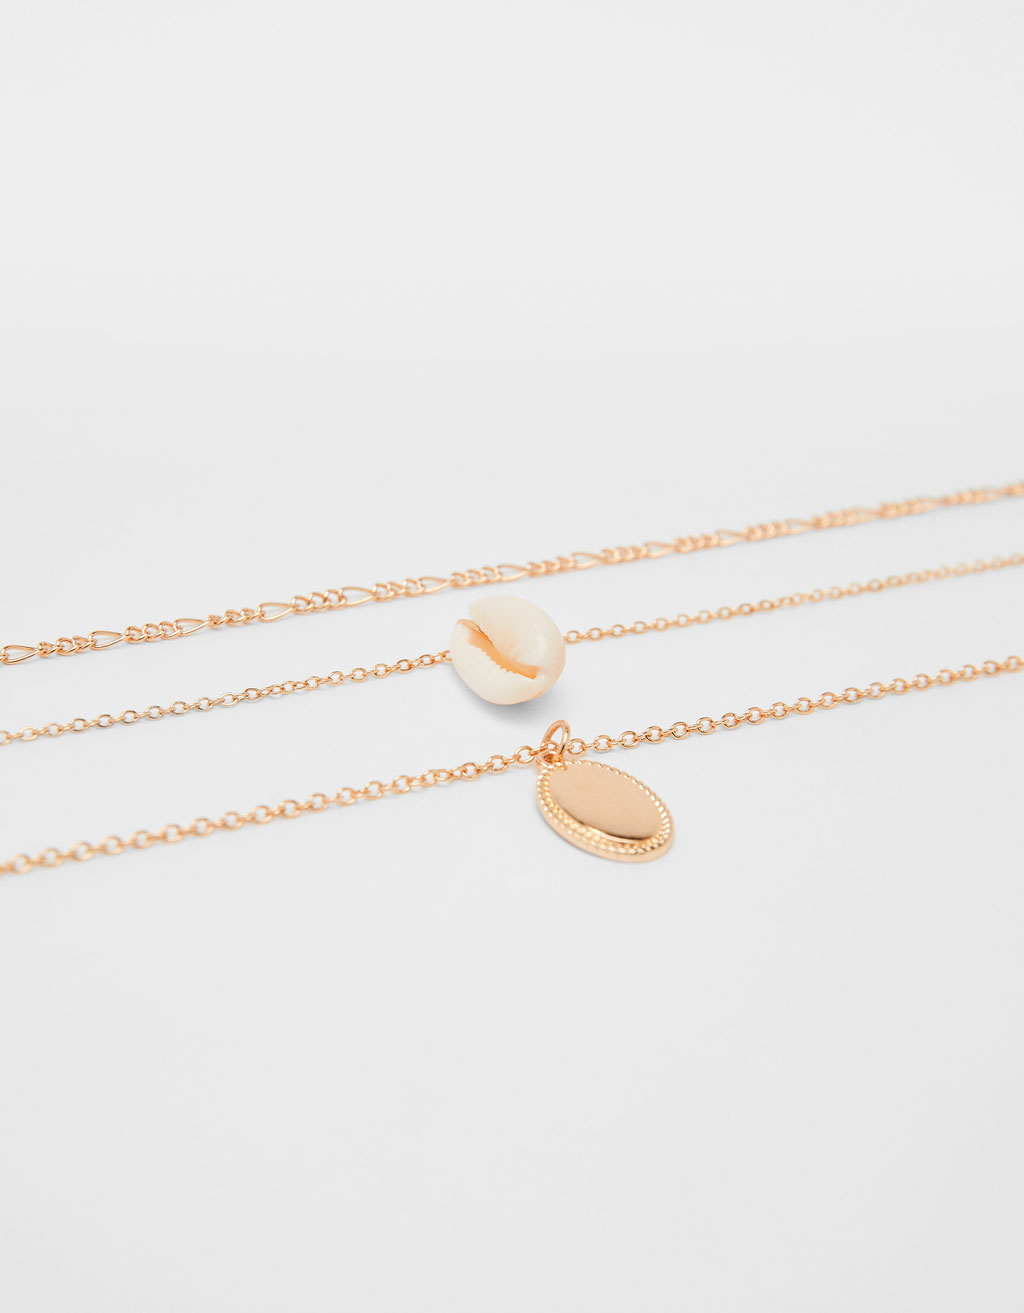 Chain necklace with seashell